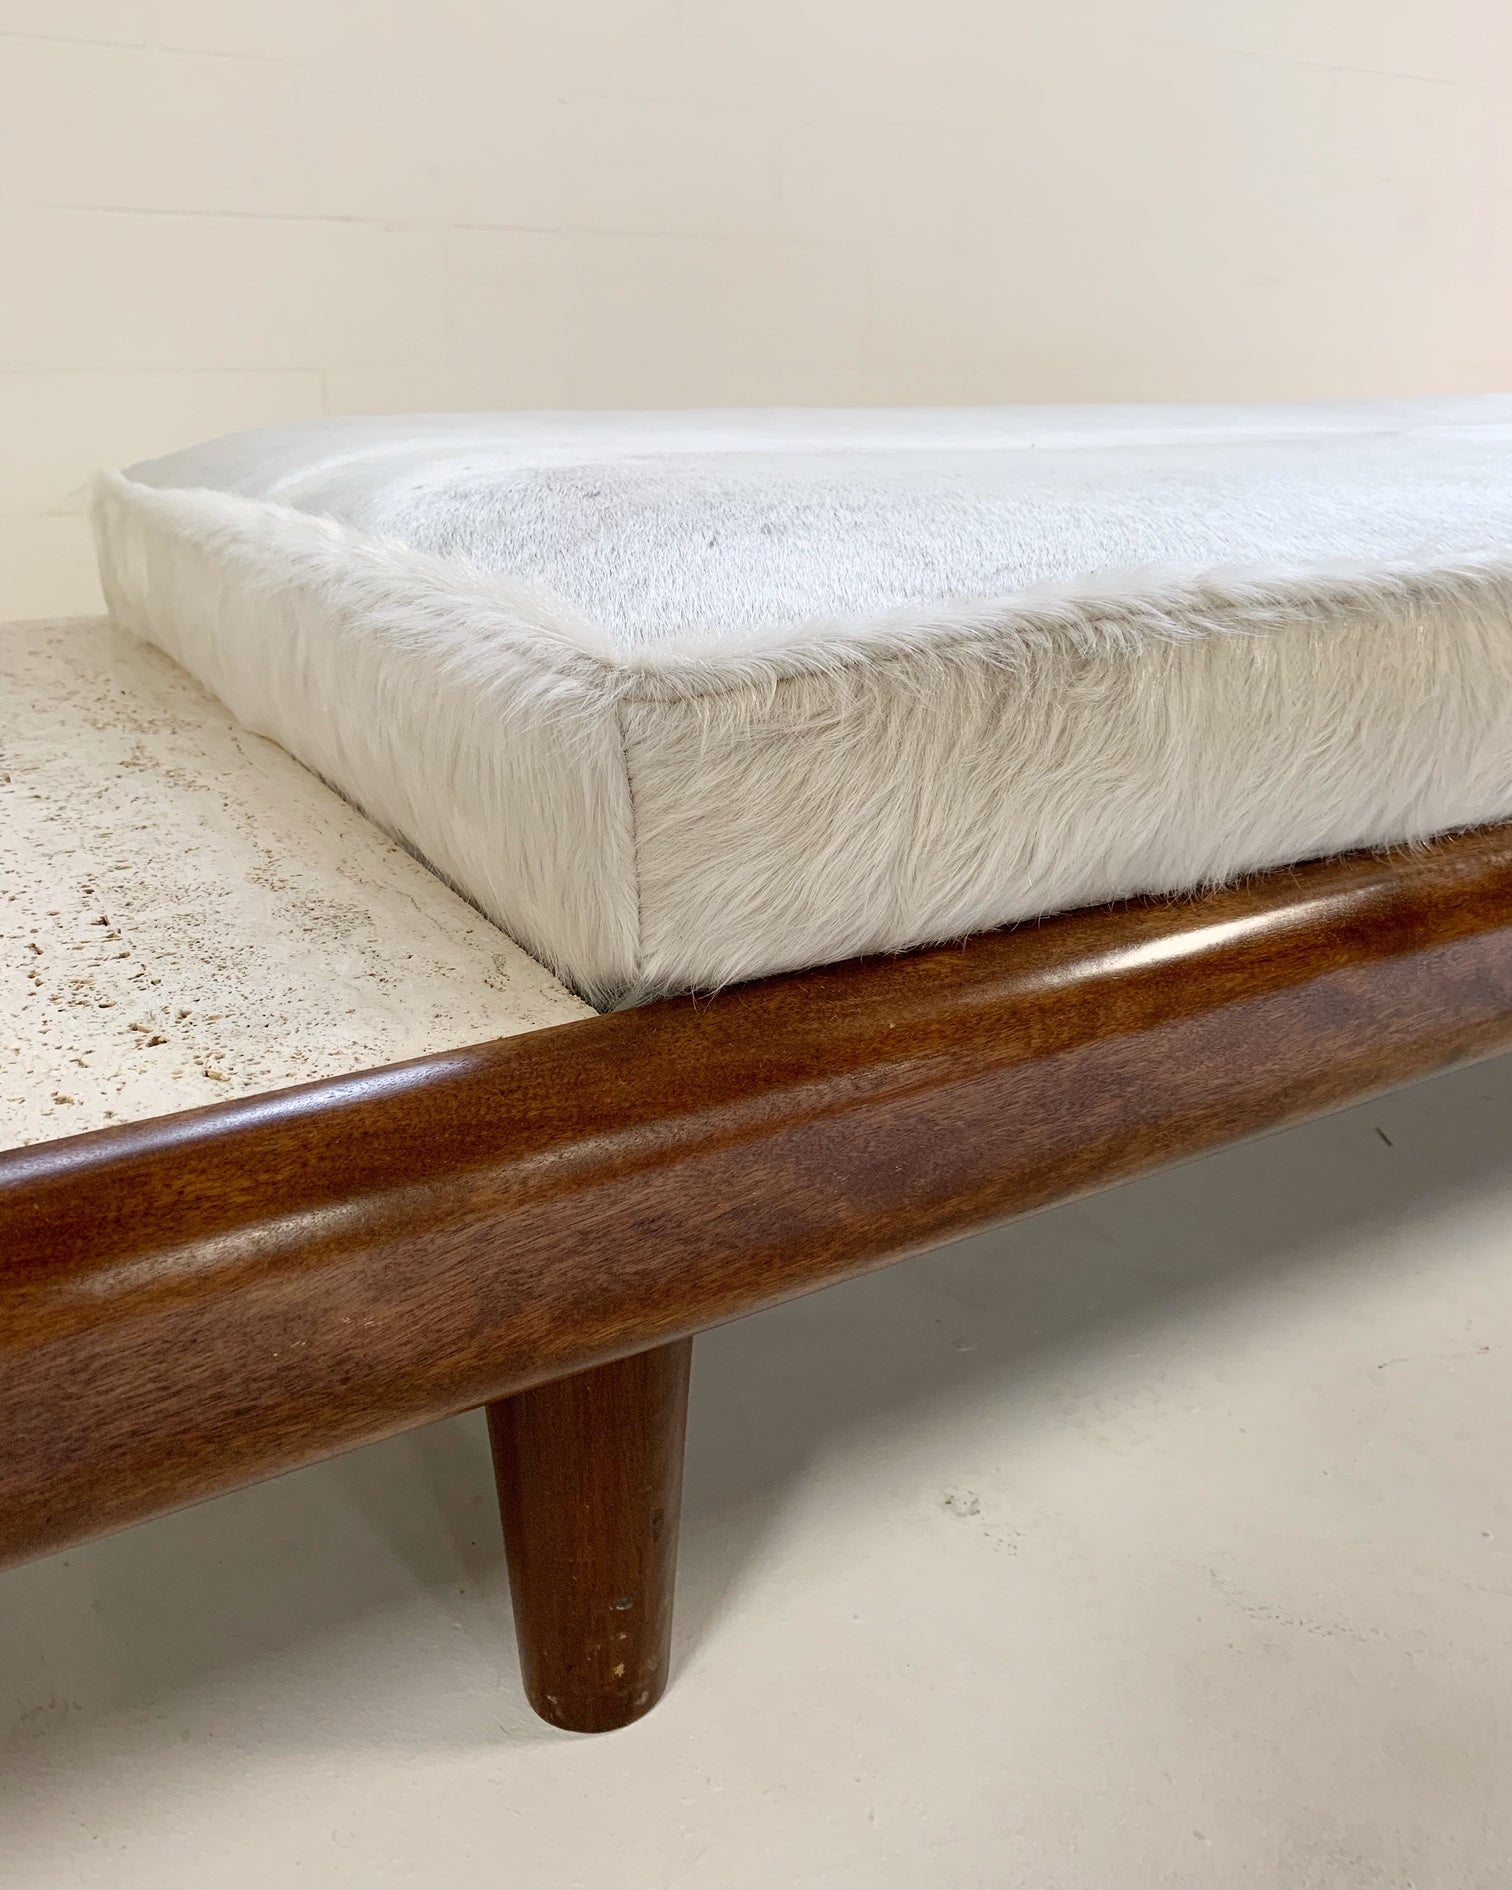 Daybed with Brazilian Cowhide Cushion - FORSYTH